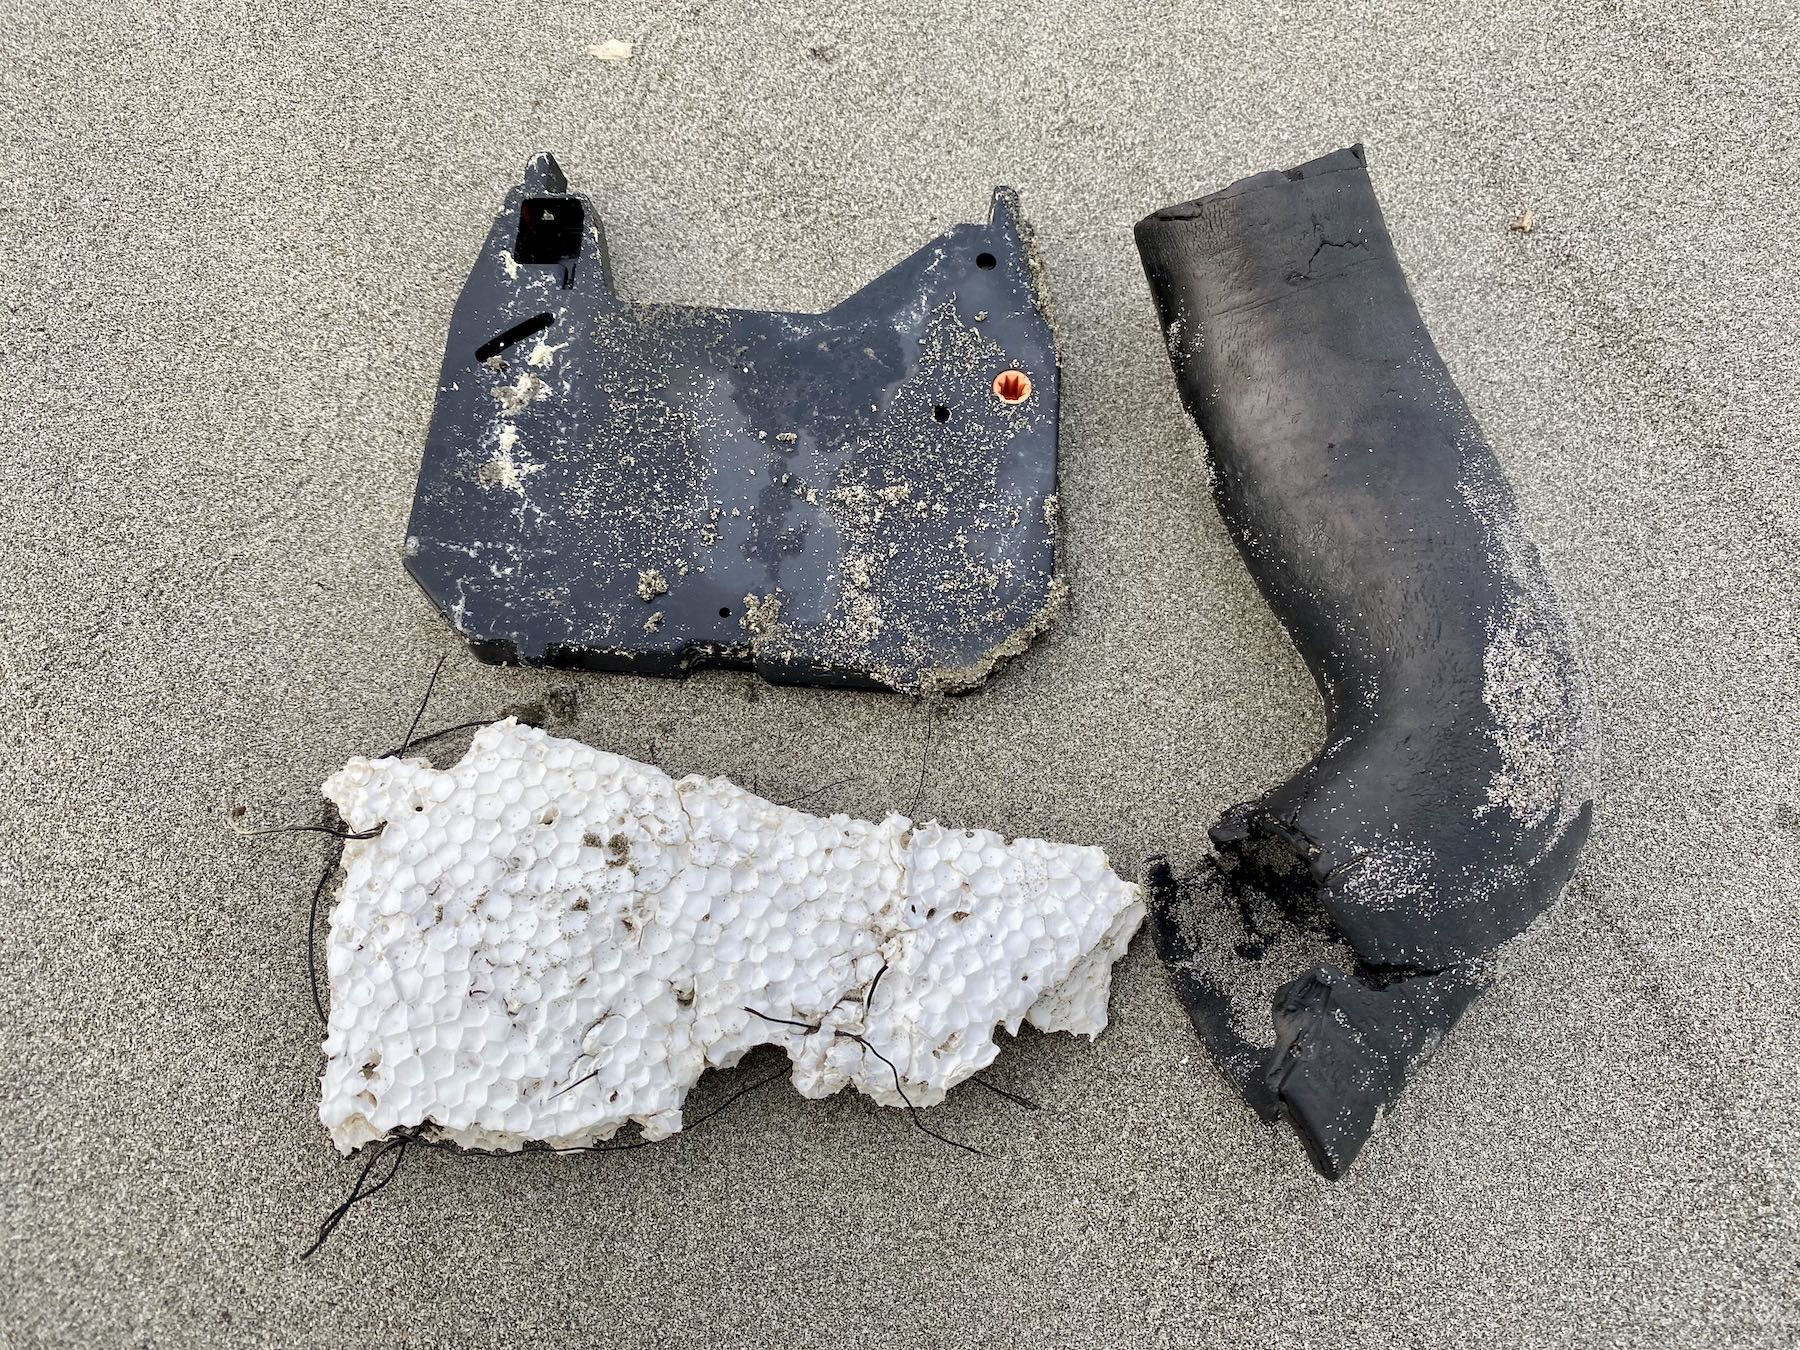 Polystyrene, a cassette from a typewriter(?), rubber hose from a motor vehicle.